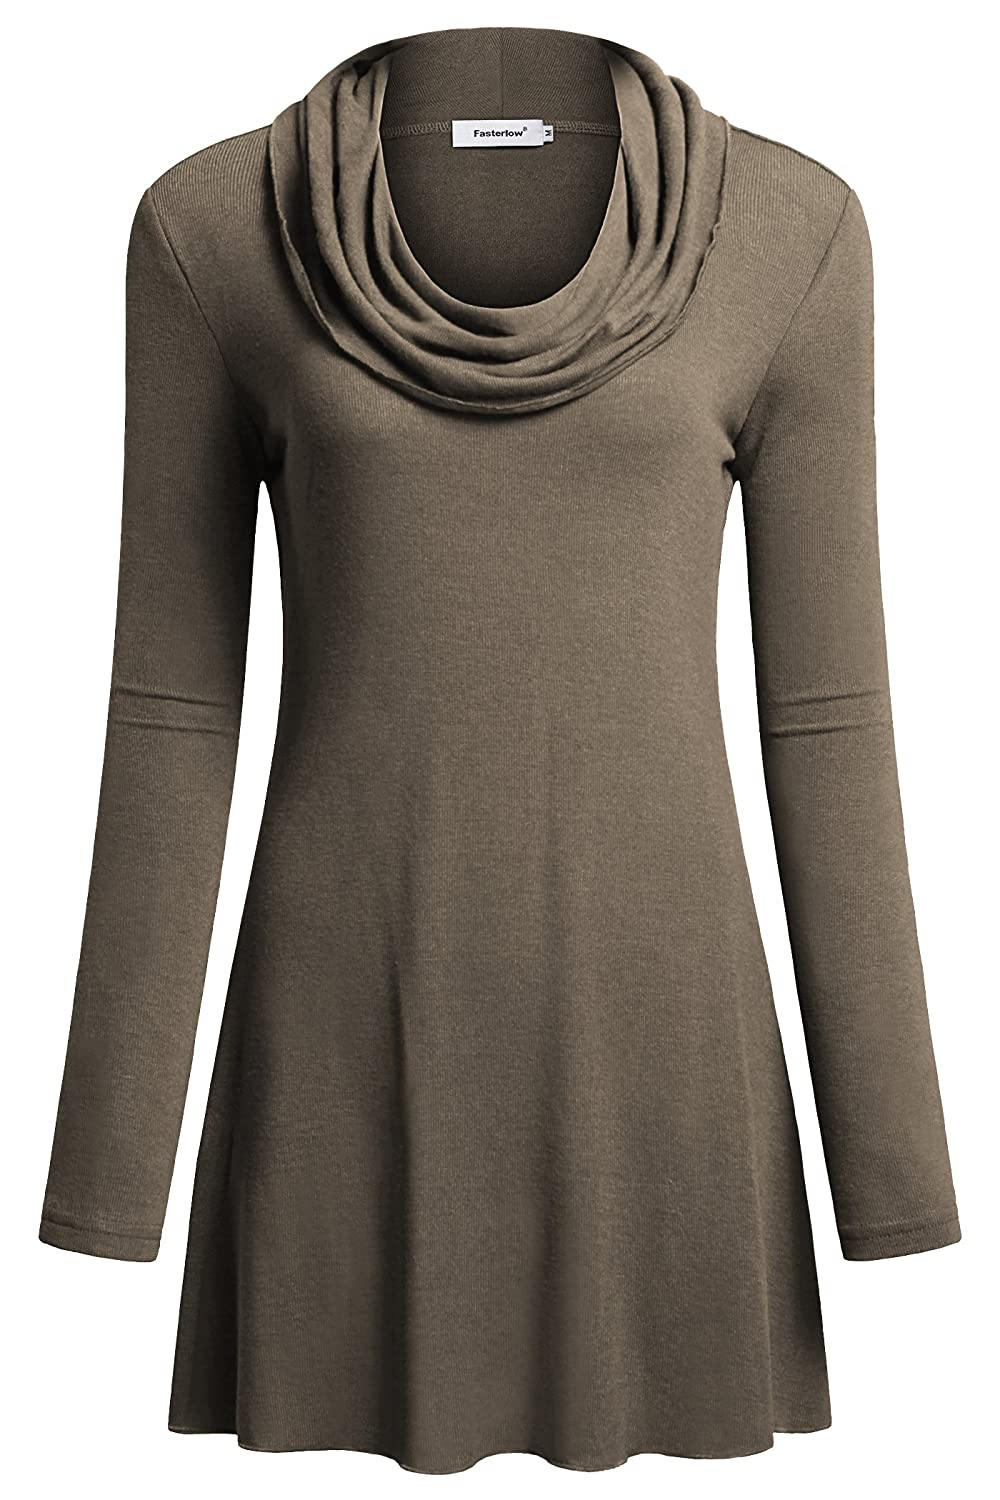 71e74bf530ece Top 10 wholesale Cowl Neck Style - Chinabrands.com